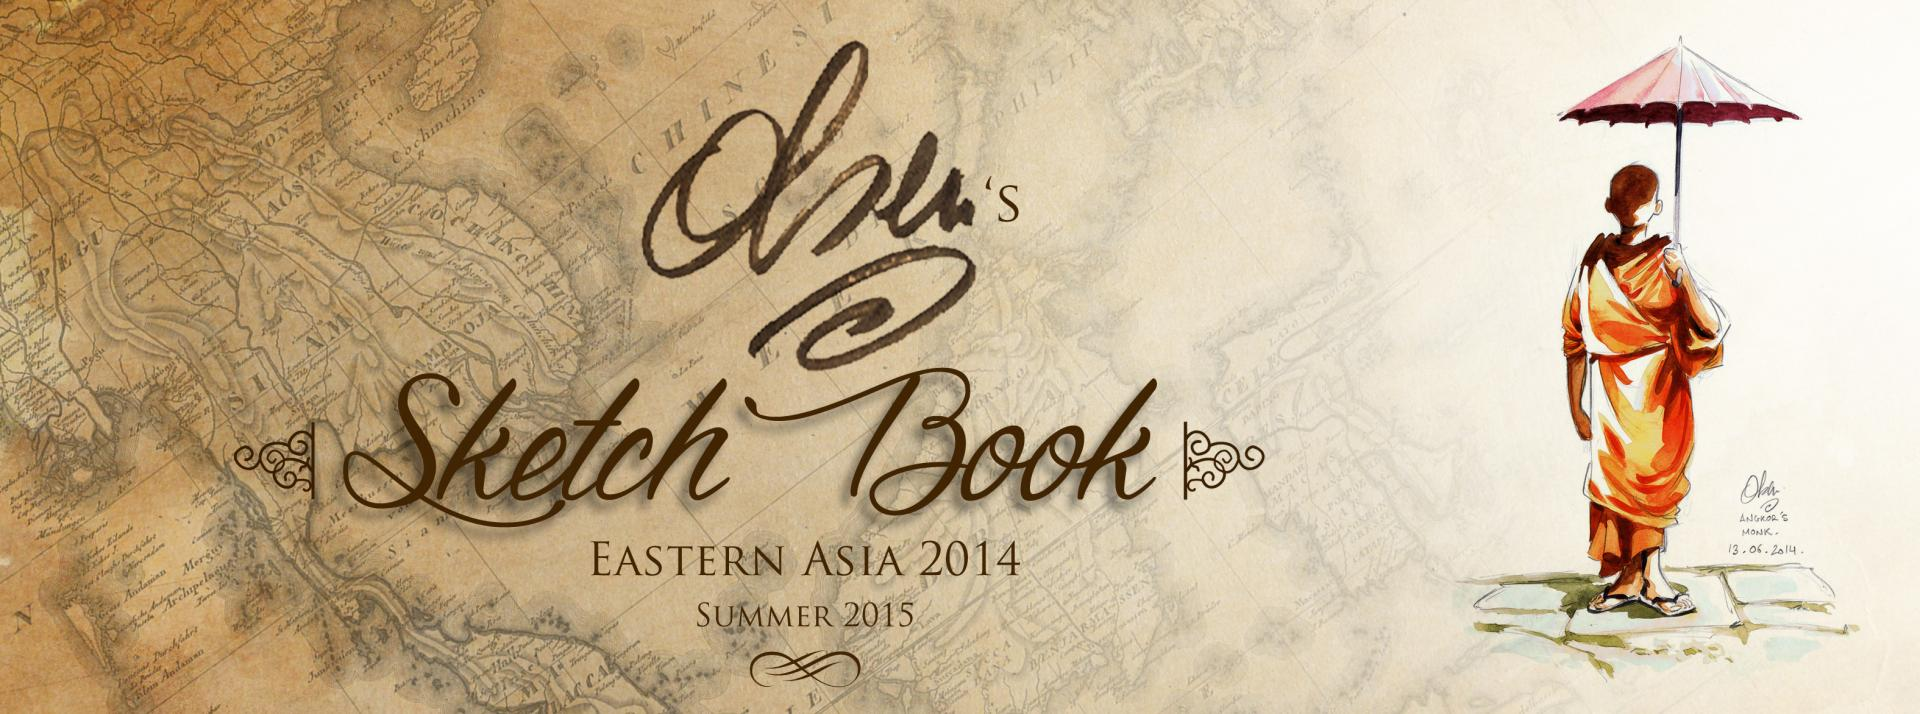 Sketch Book Eastern Asia